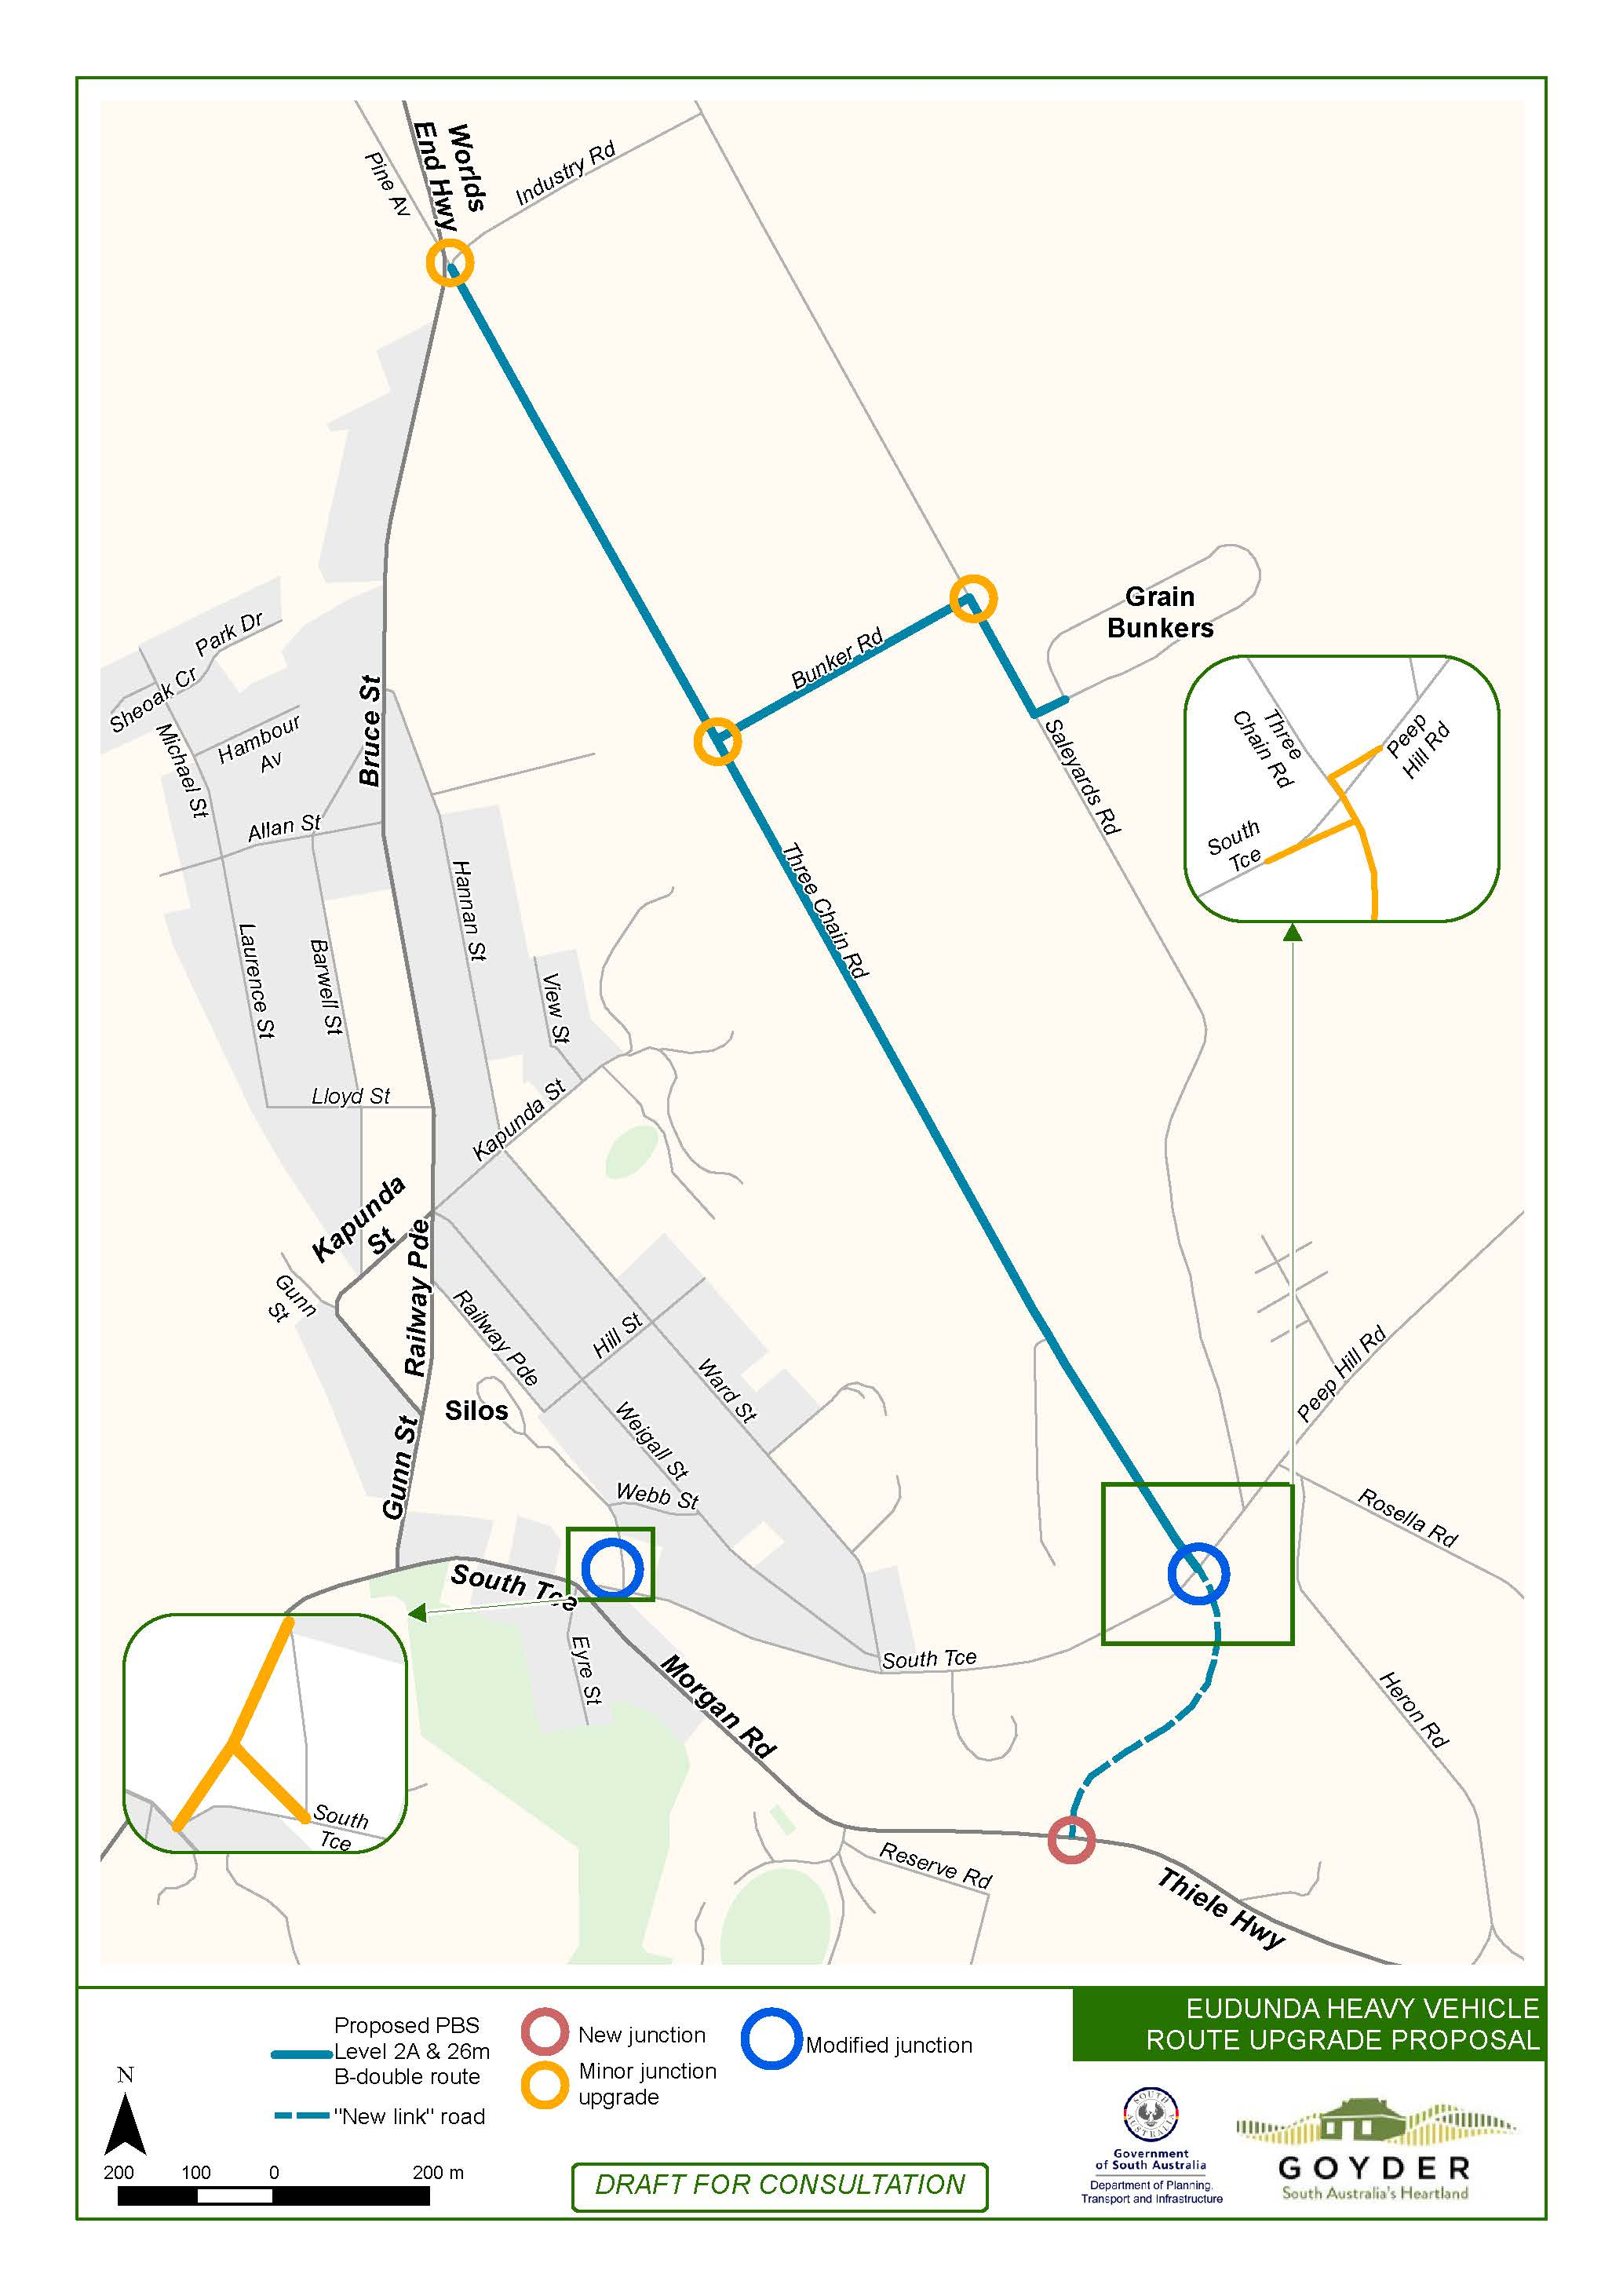 Eudunda Heavy Vehicle Bypass proposed by Council 3rd Nov 2016